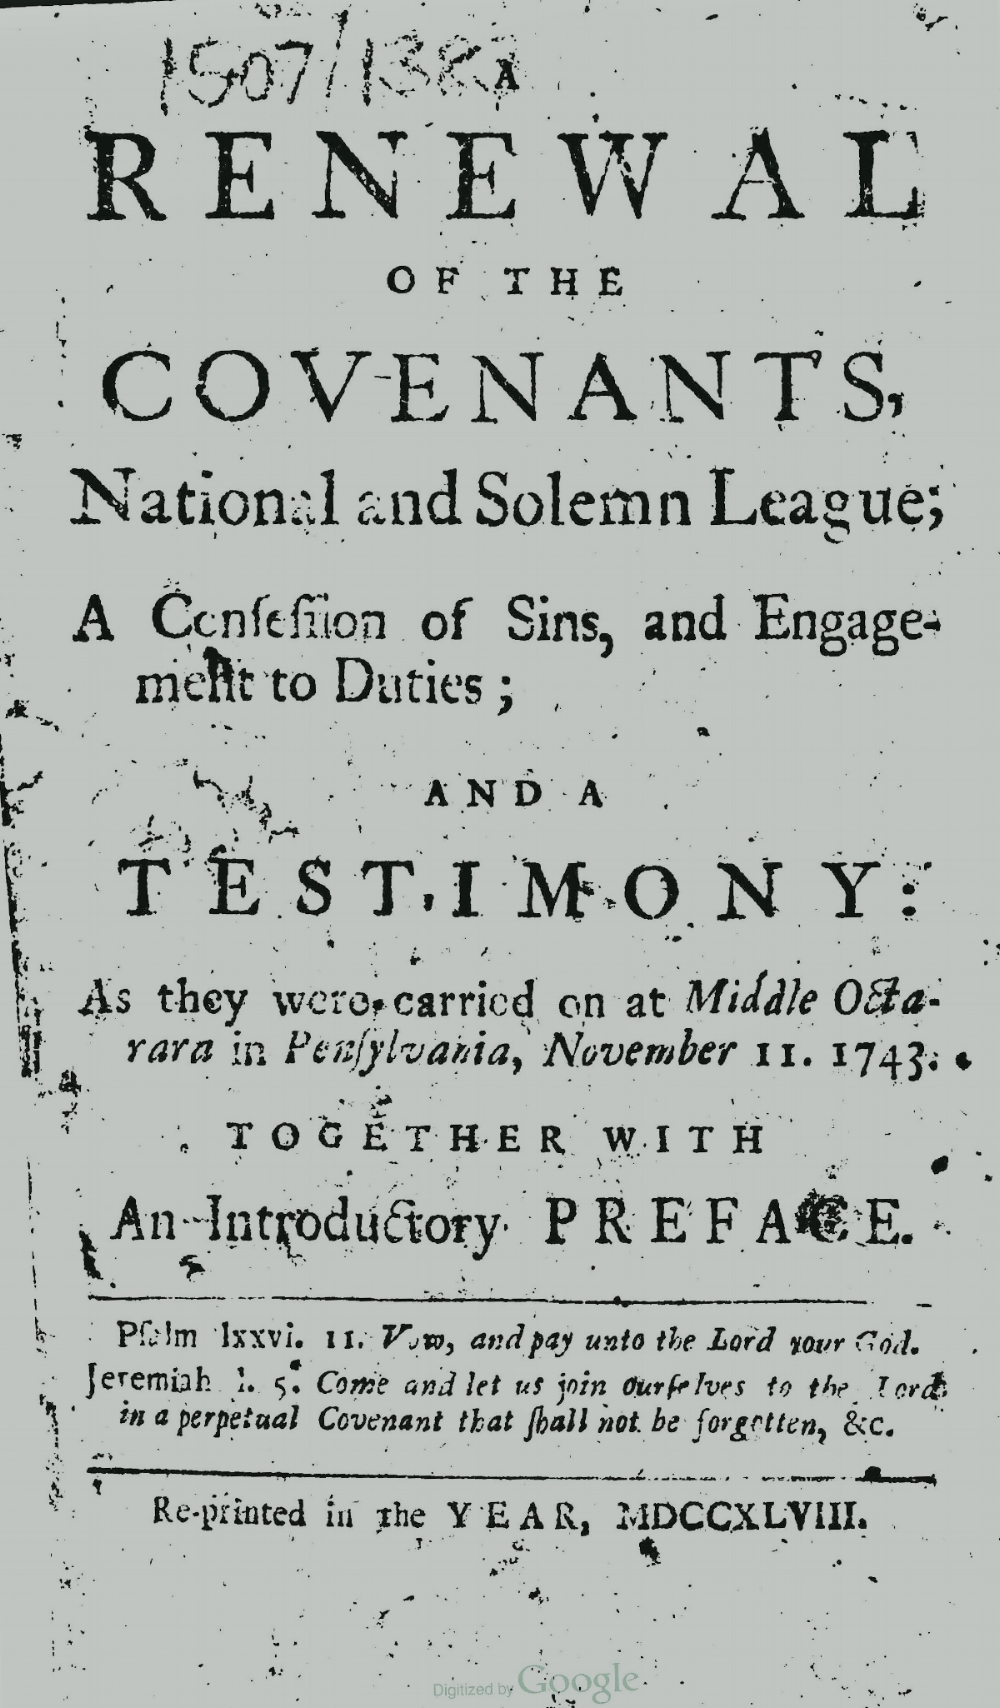 Craighead, Alexander, Renewal of the Covenants Title Page.jpg